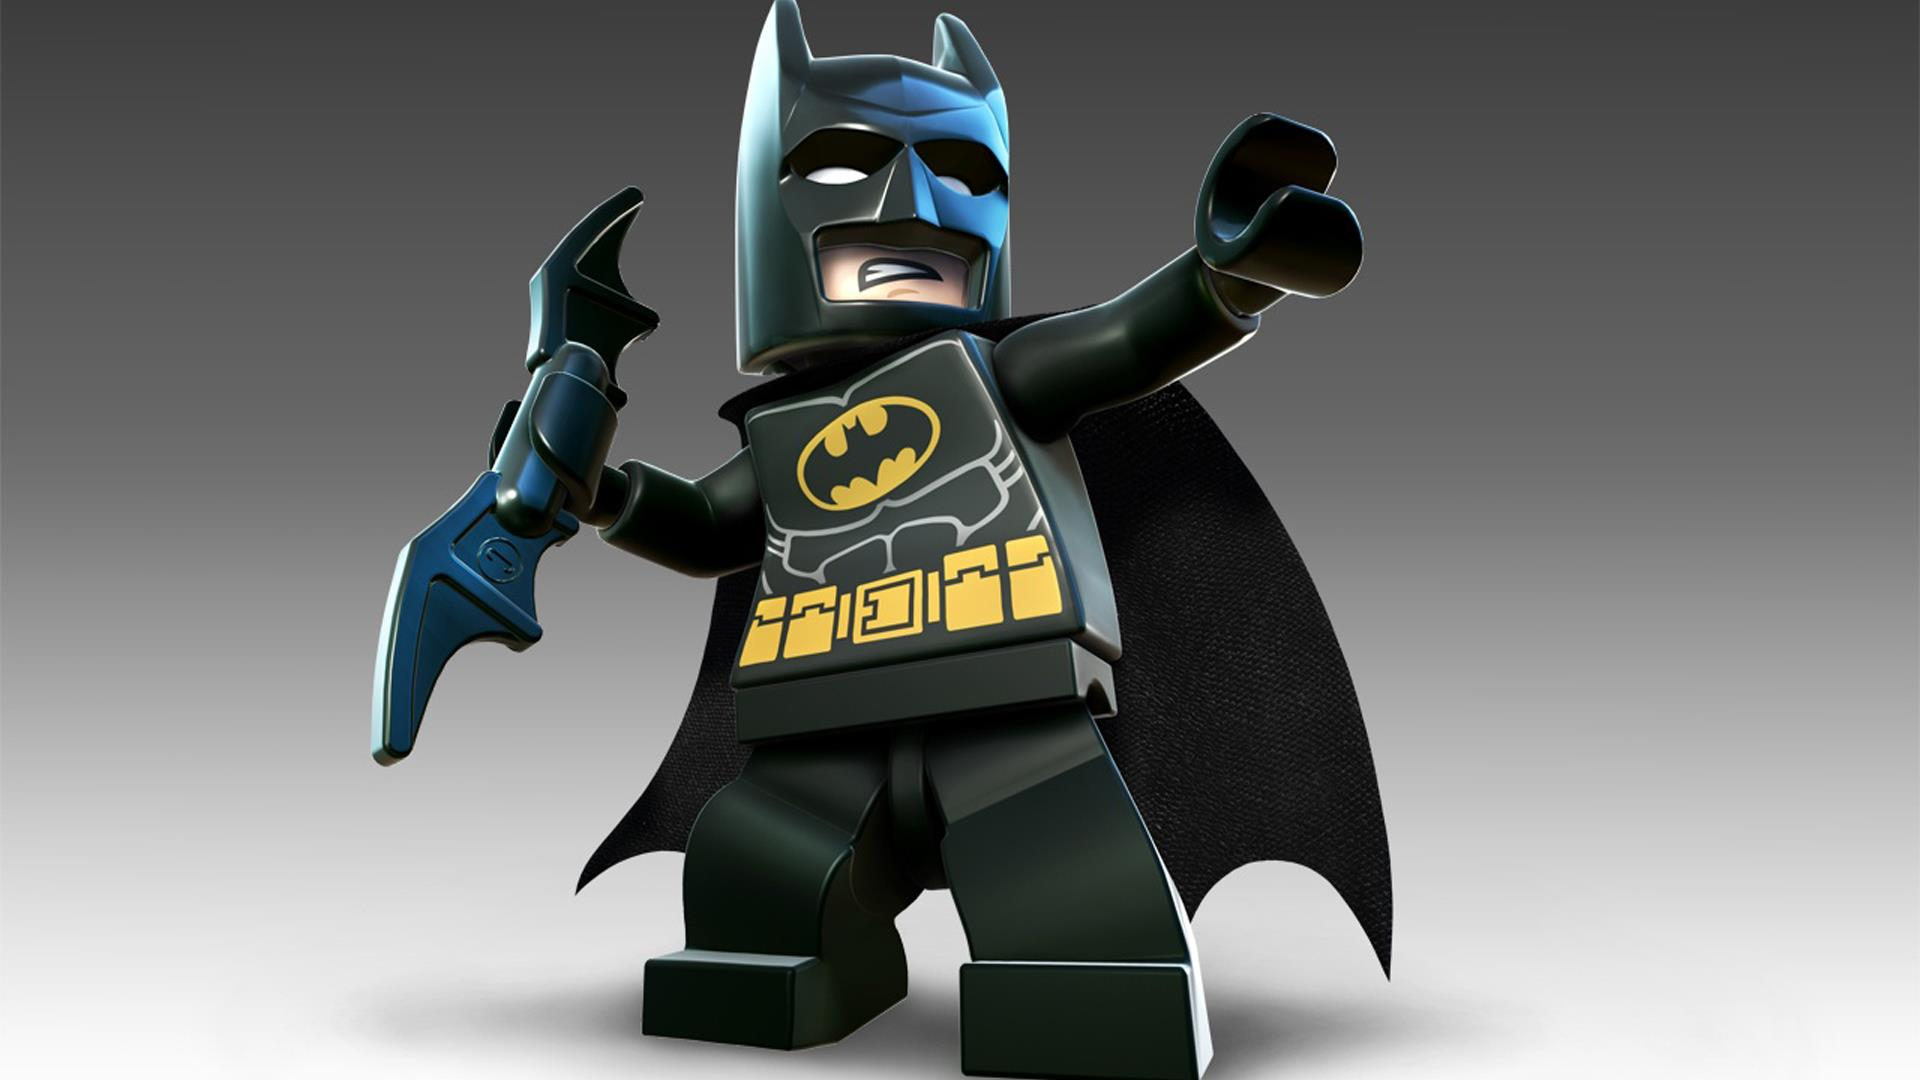 Batman Lego HD Cartoons 4k Wallpapers Images Backgrounds